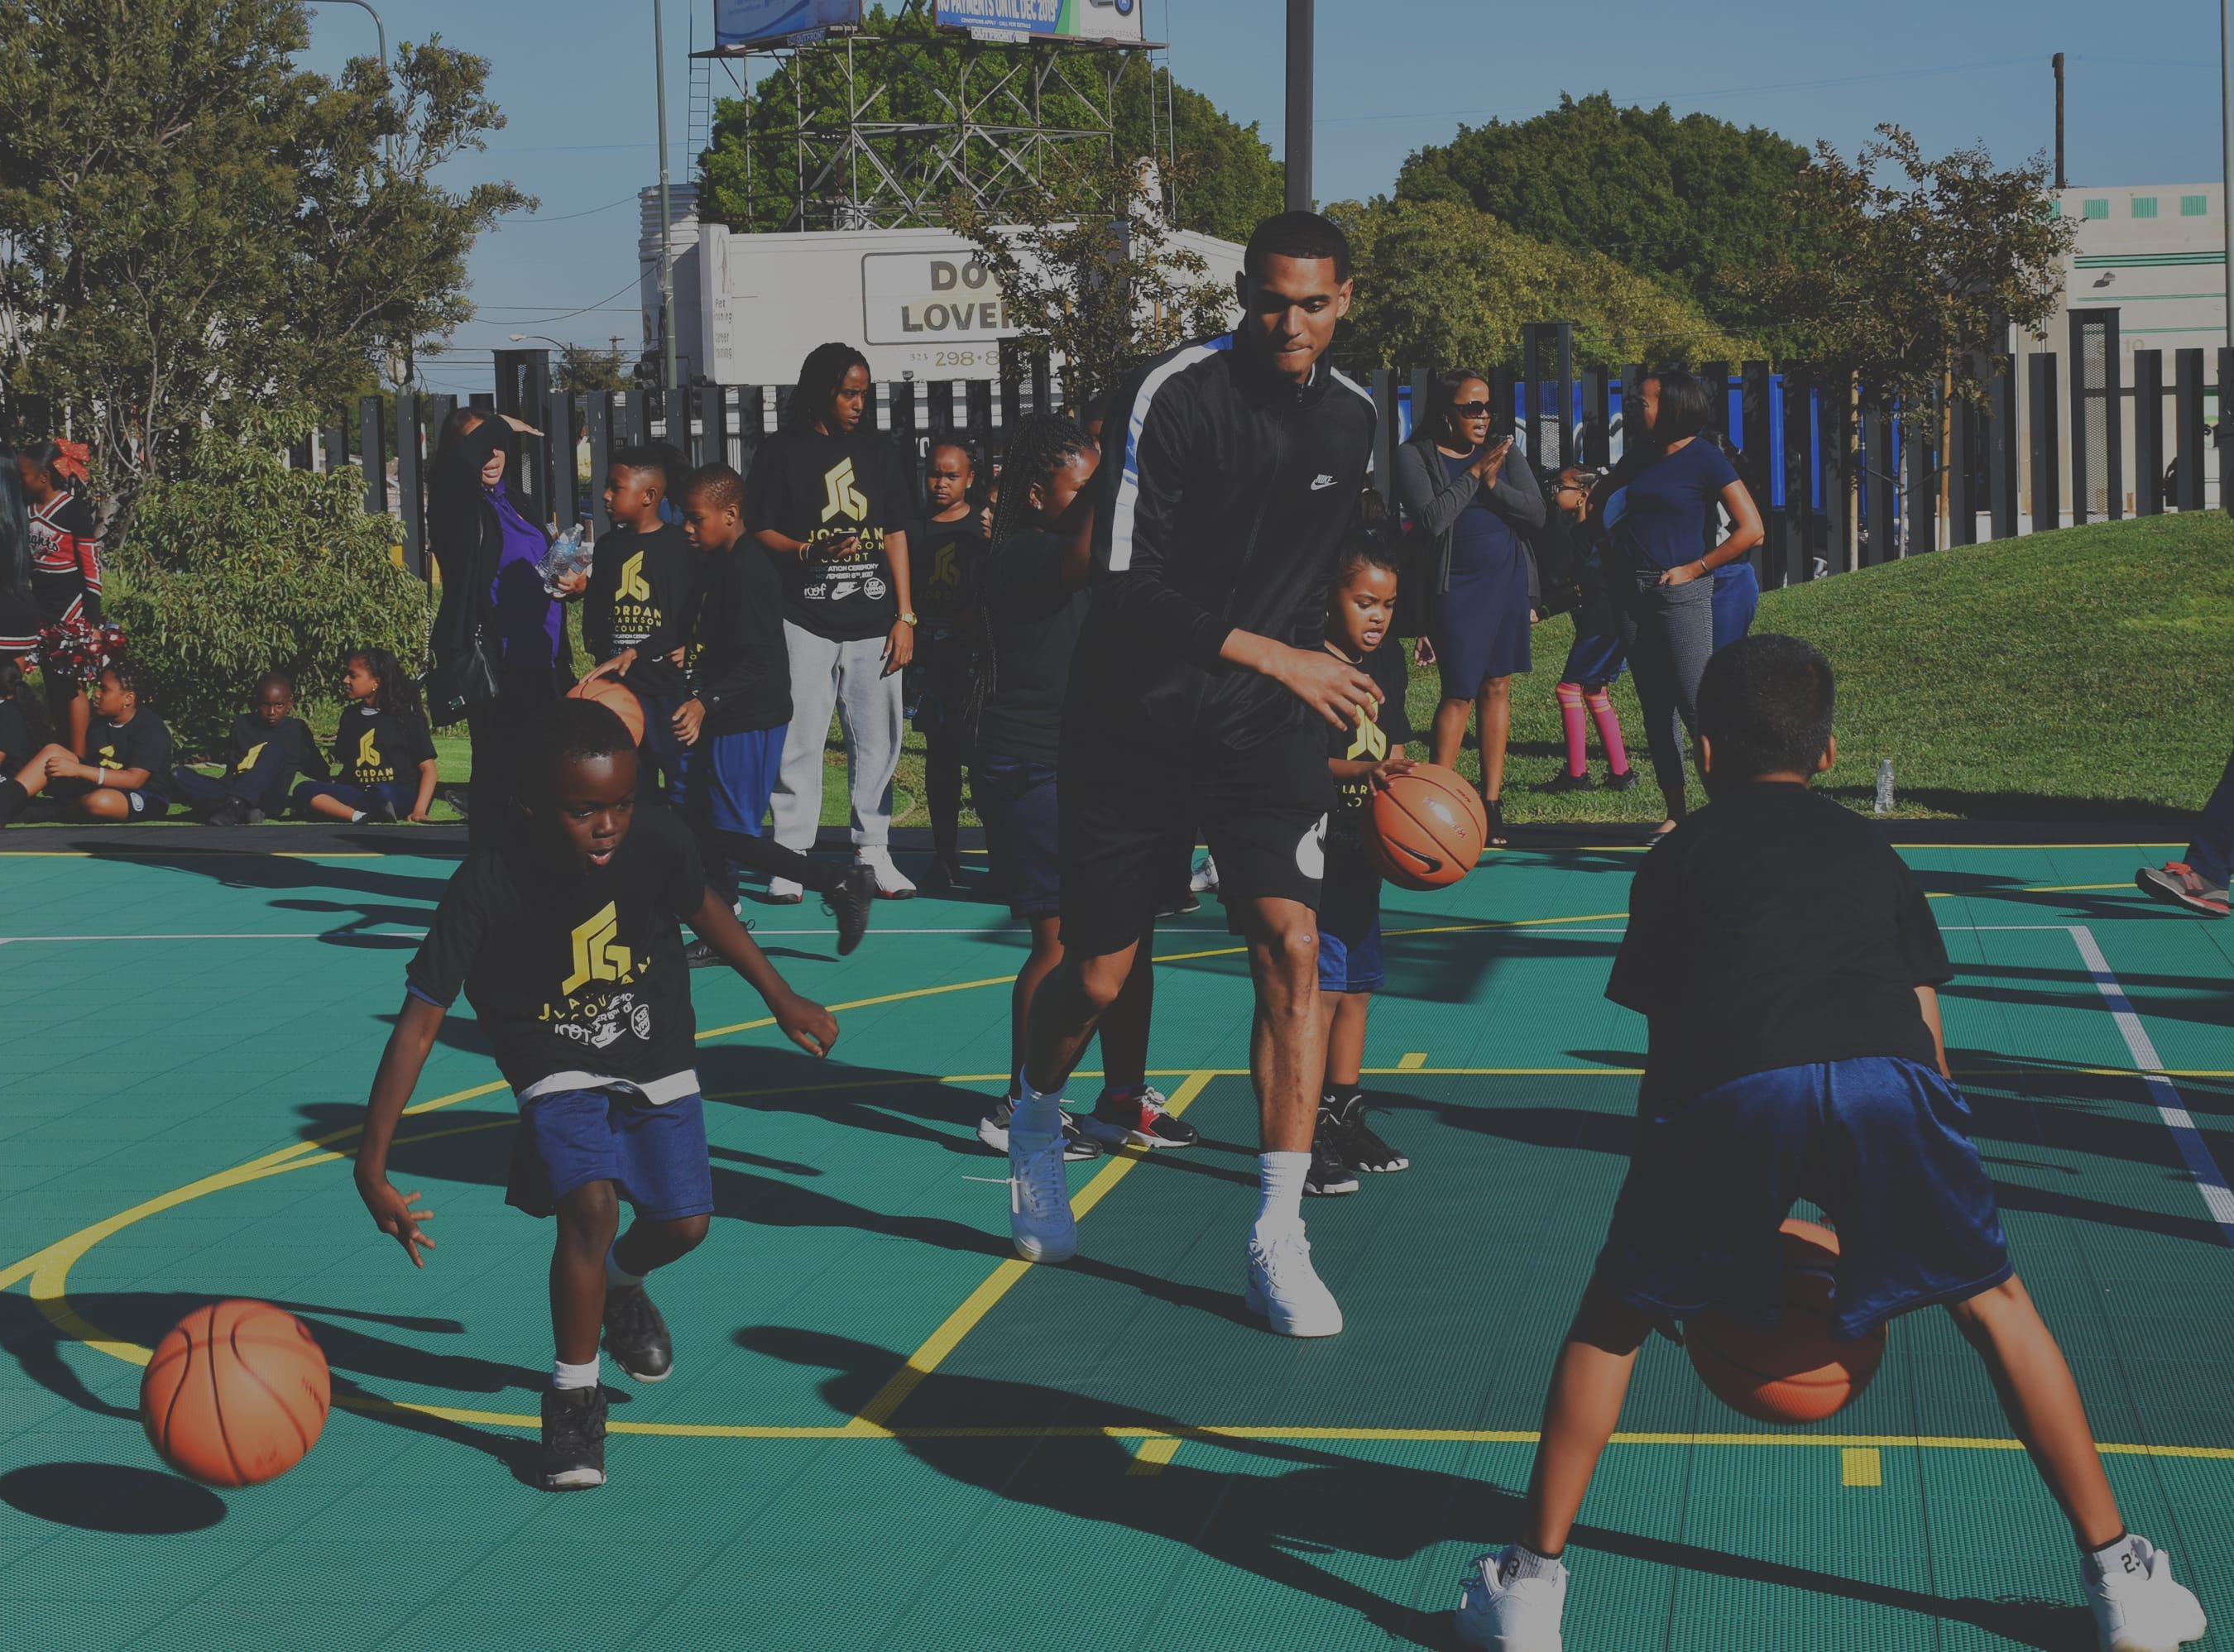 NBPA Foundation Image Gallery